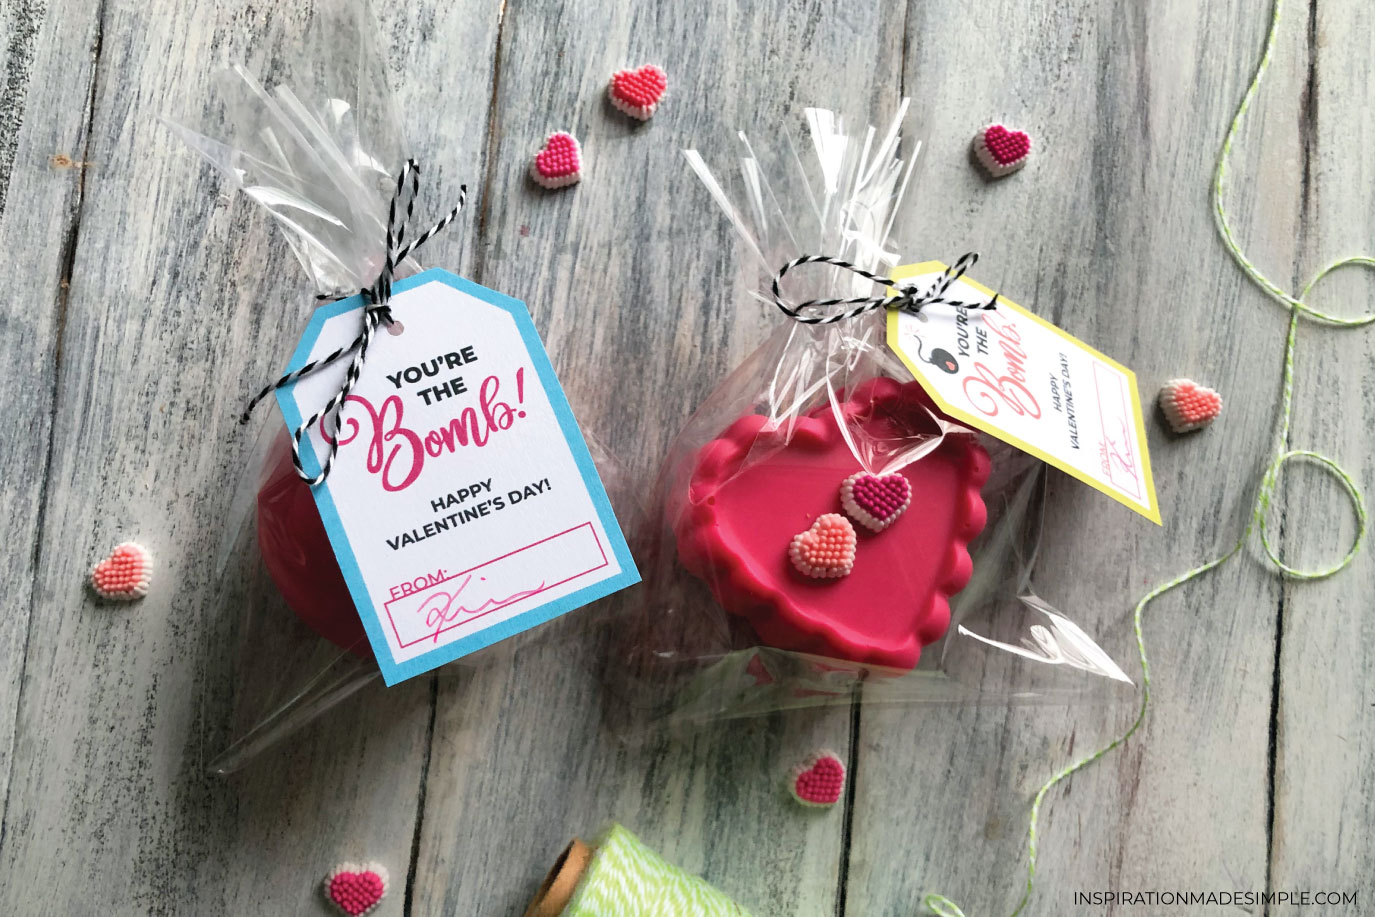 Heart-shaped Hot Chocolate Bombs for Valentine's Day